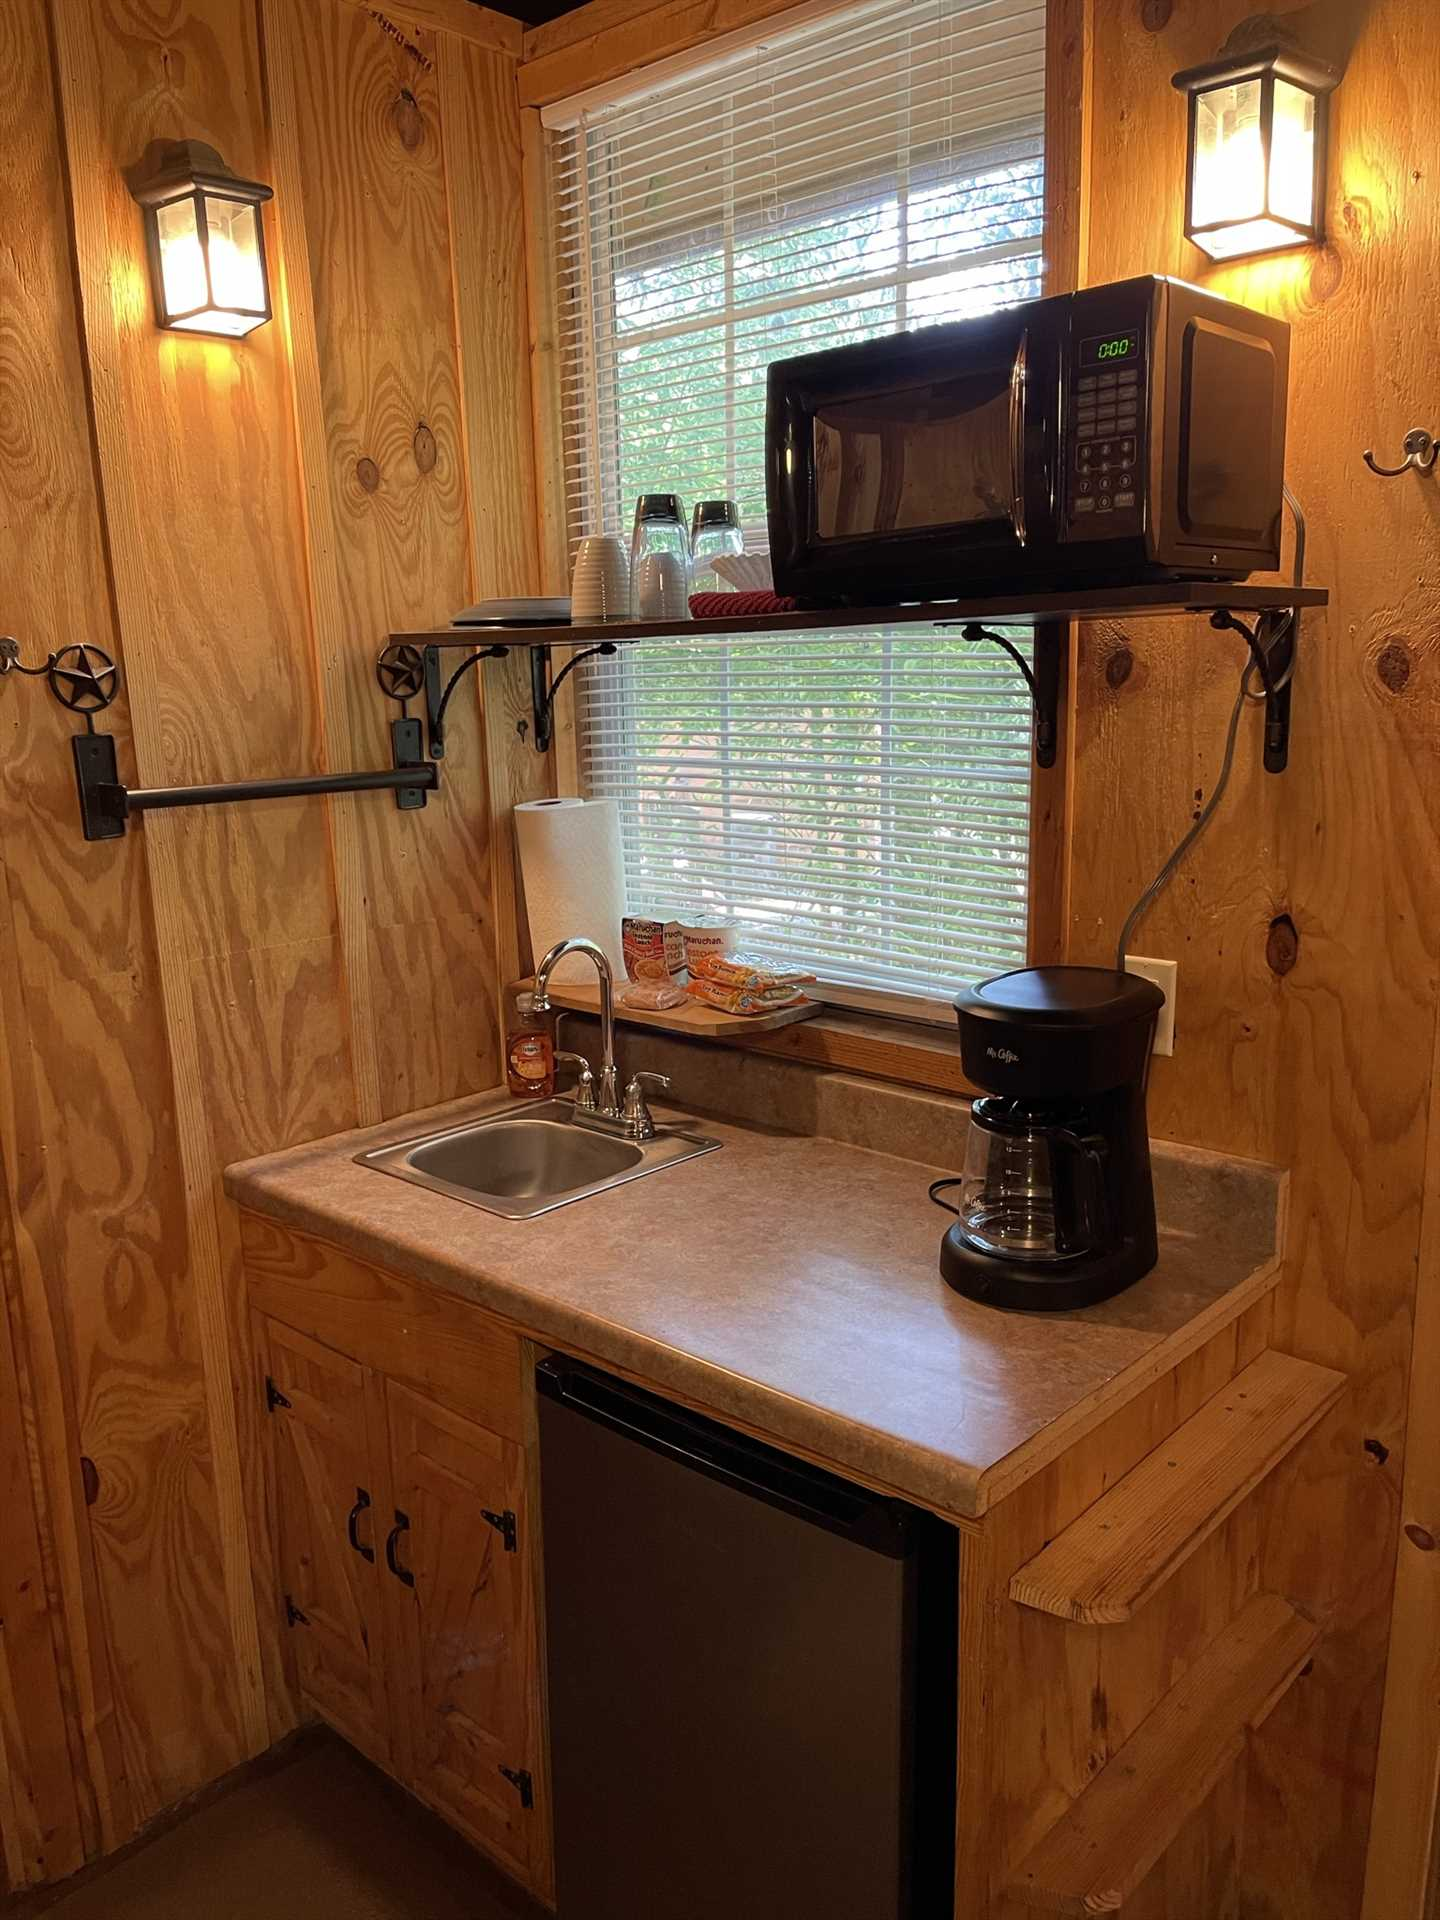 Your tidy kitchenette covers basic culinary needs...and keep in mind all the eateries and shops of Kerrville are close by!